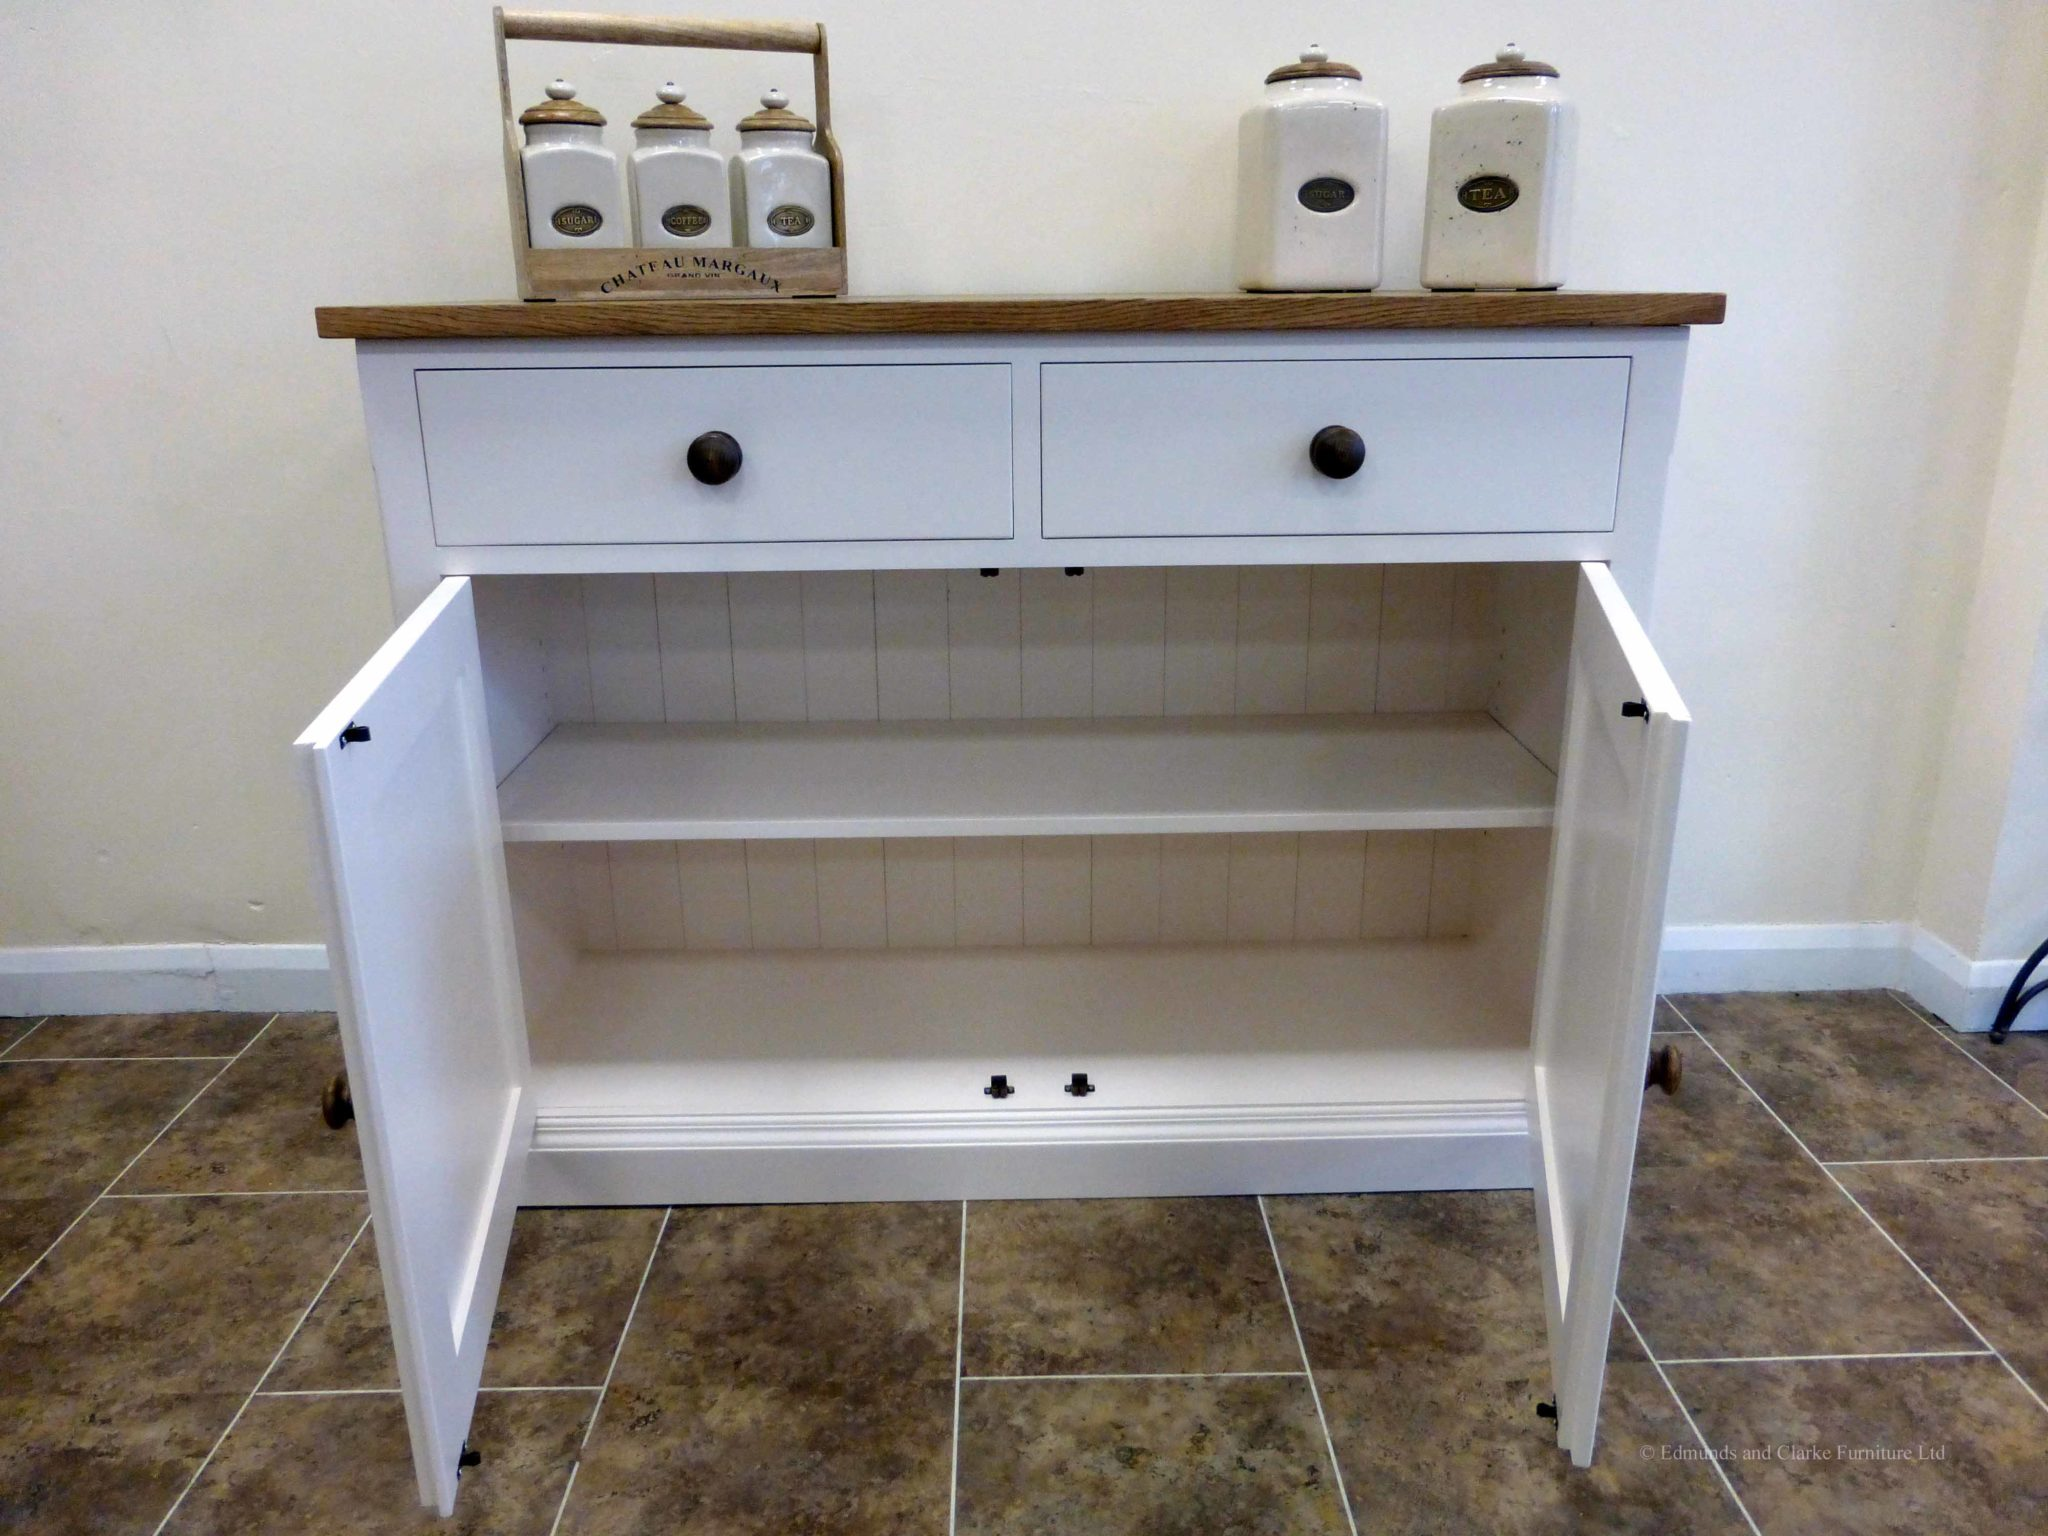 Edmunds Painted 4ft Sideboard. 25mm oak top. 2 drawers and 2 doors with adjustable shelves within. image showing dunwich stone with oak round handles and knobs. choice of handles. EDM040